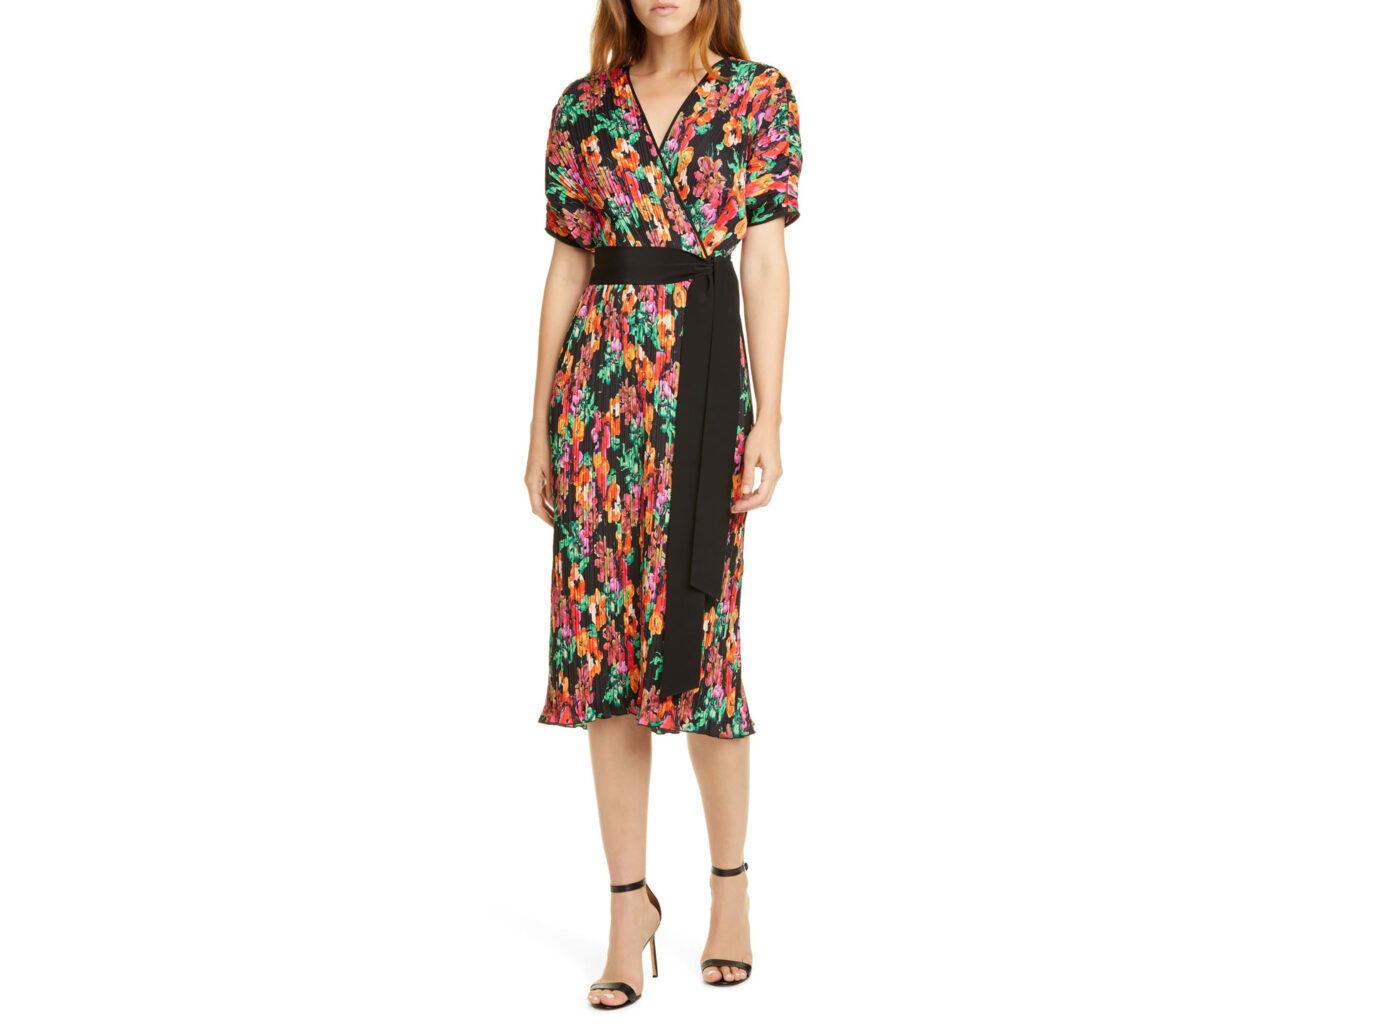 DVF Autumn Floral Micropleat Short Sleeve Dress